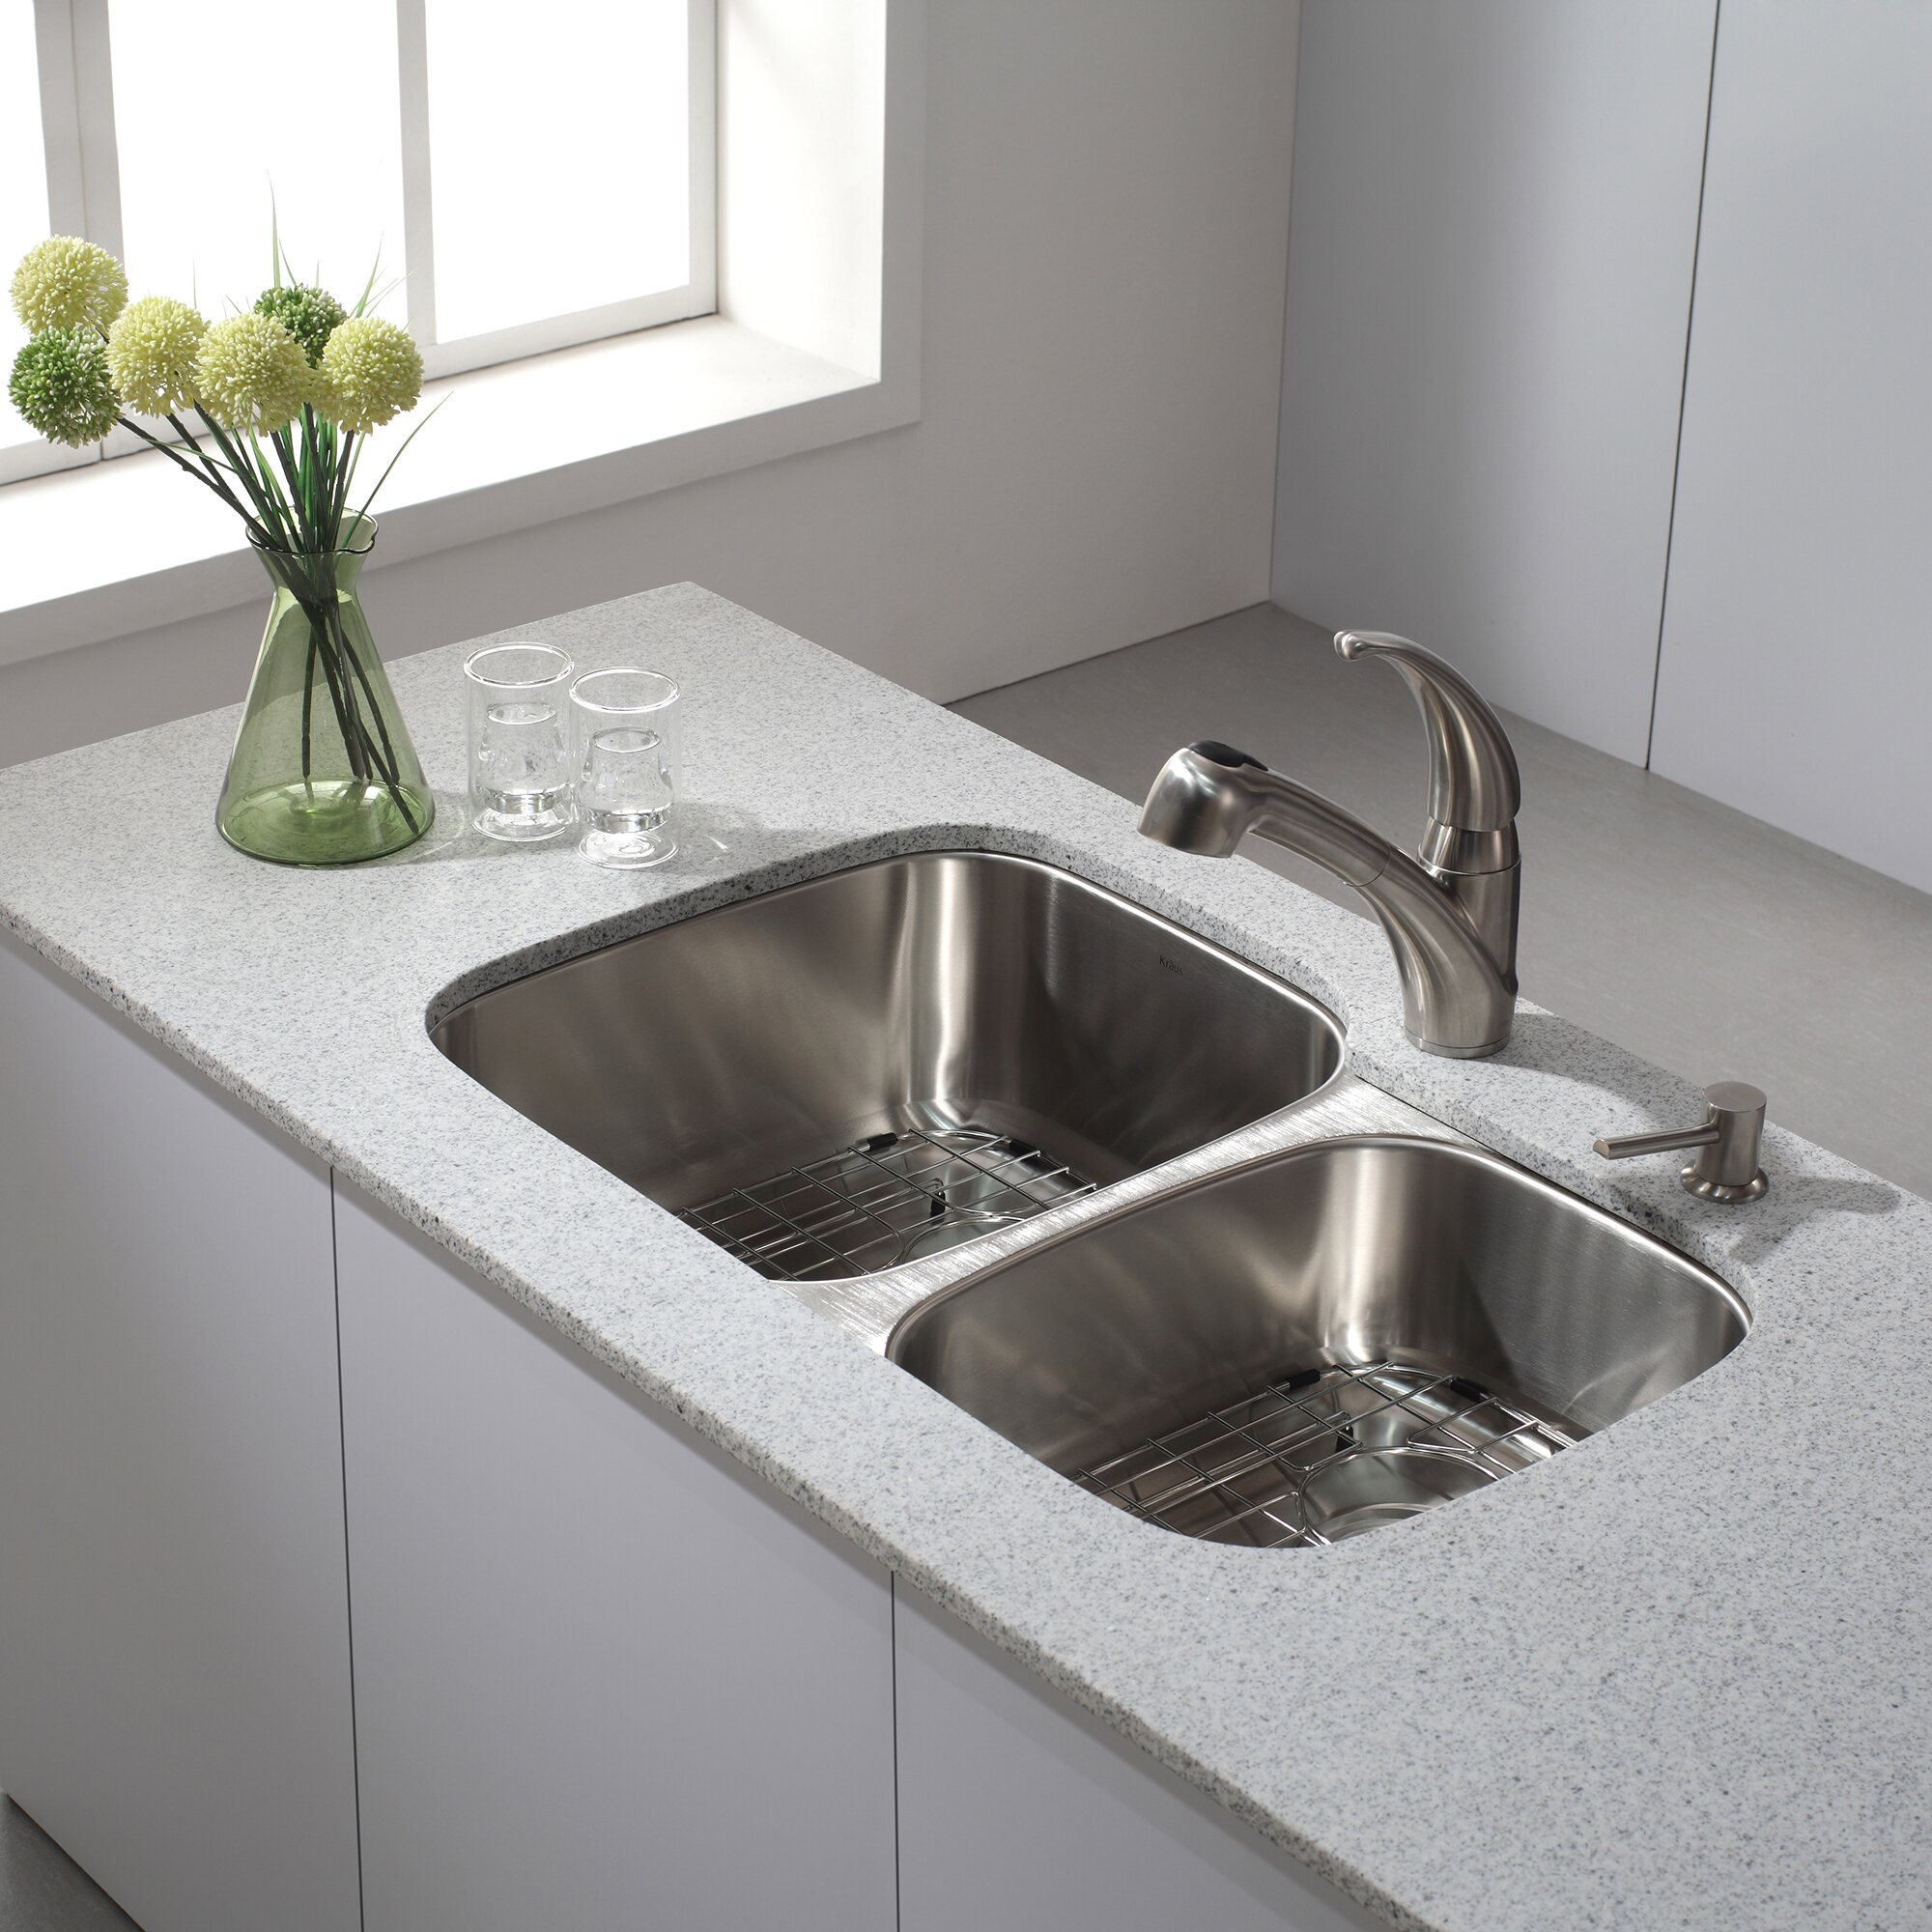 Kraus Sink Installation : 31.5